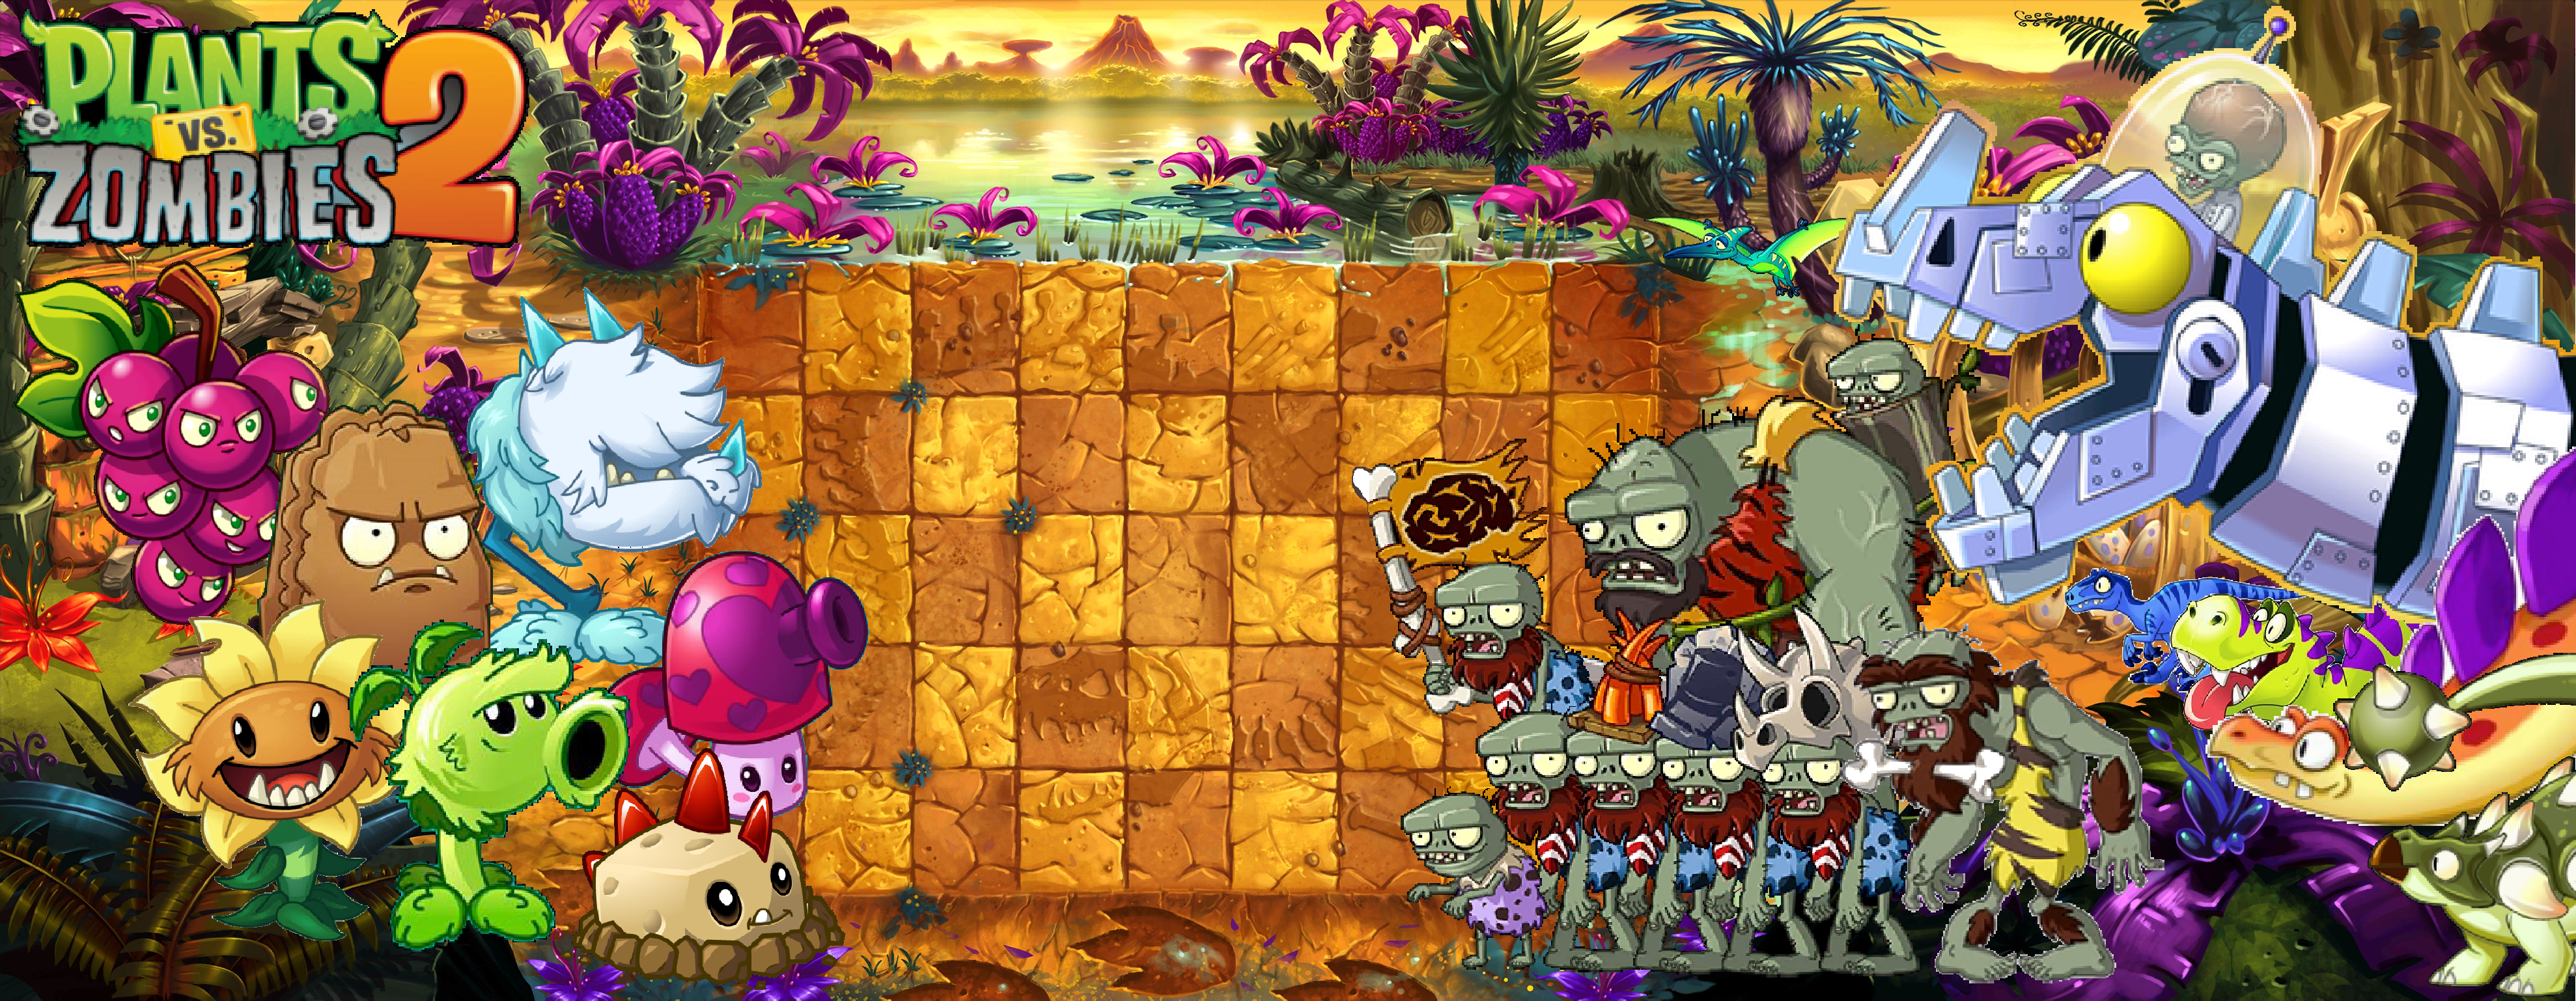 Plant Vs Zombies 2 Wallpaper: Plants Vs Zombies 2 Jurassic Marsh Wallpaper By